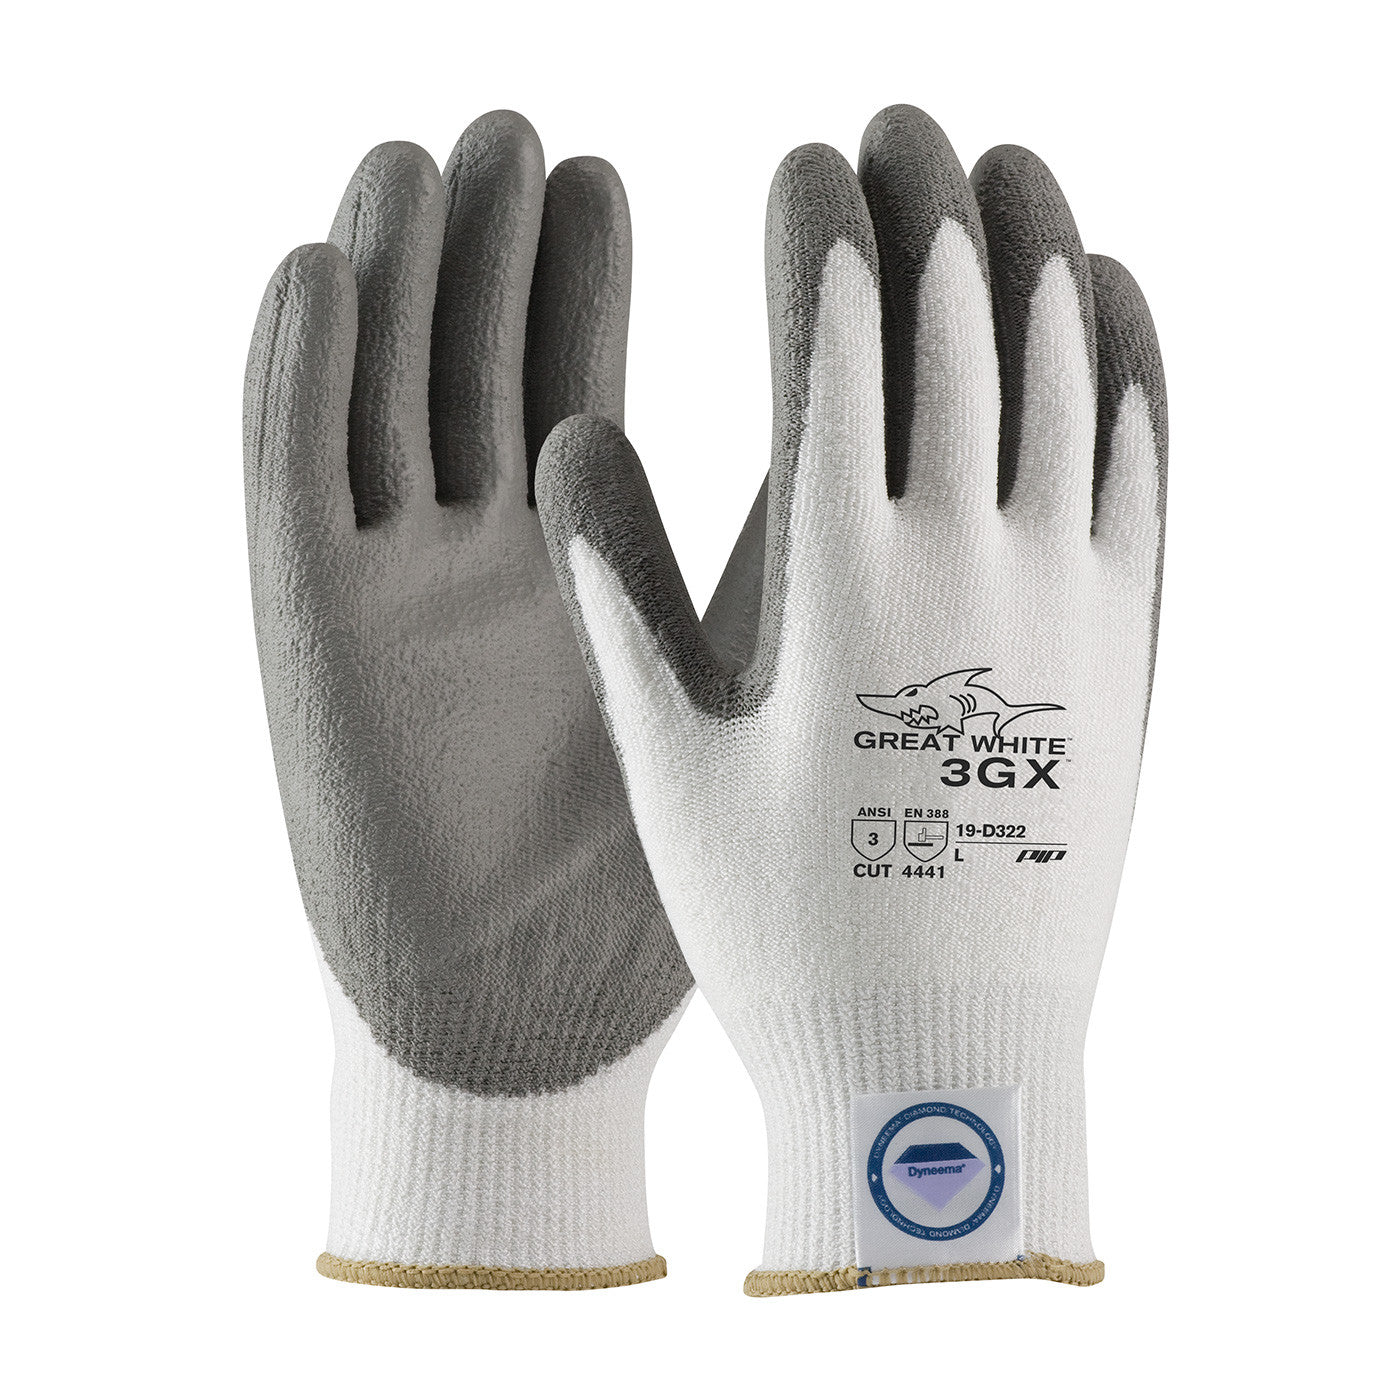 Great White Dyneema Cut Resistant Gloves Yourglovesource Com